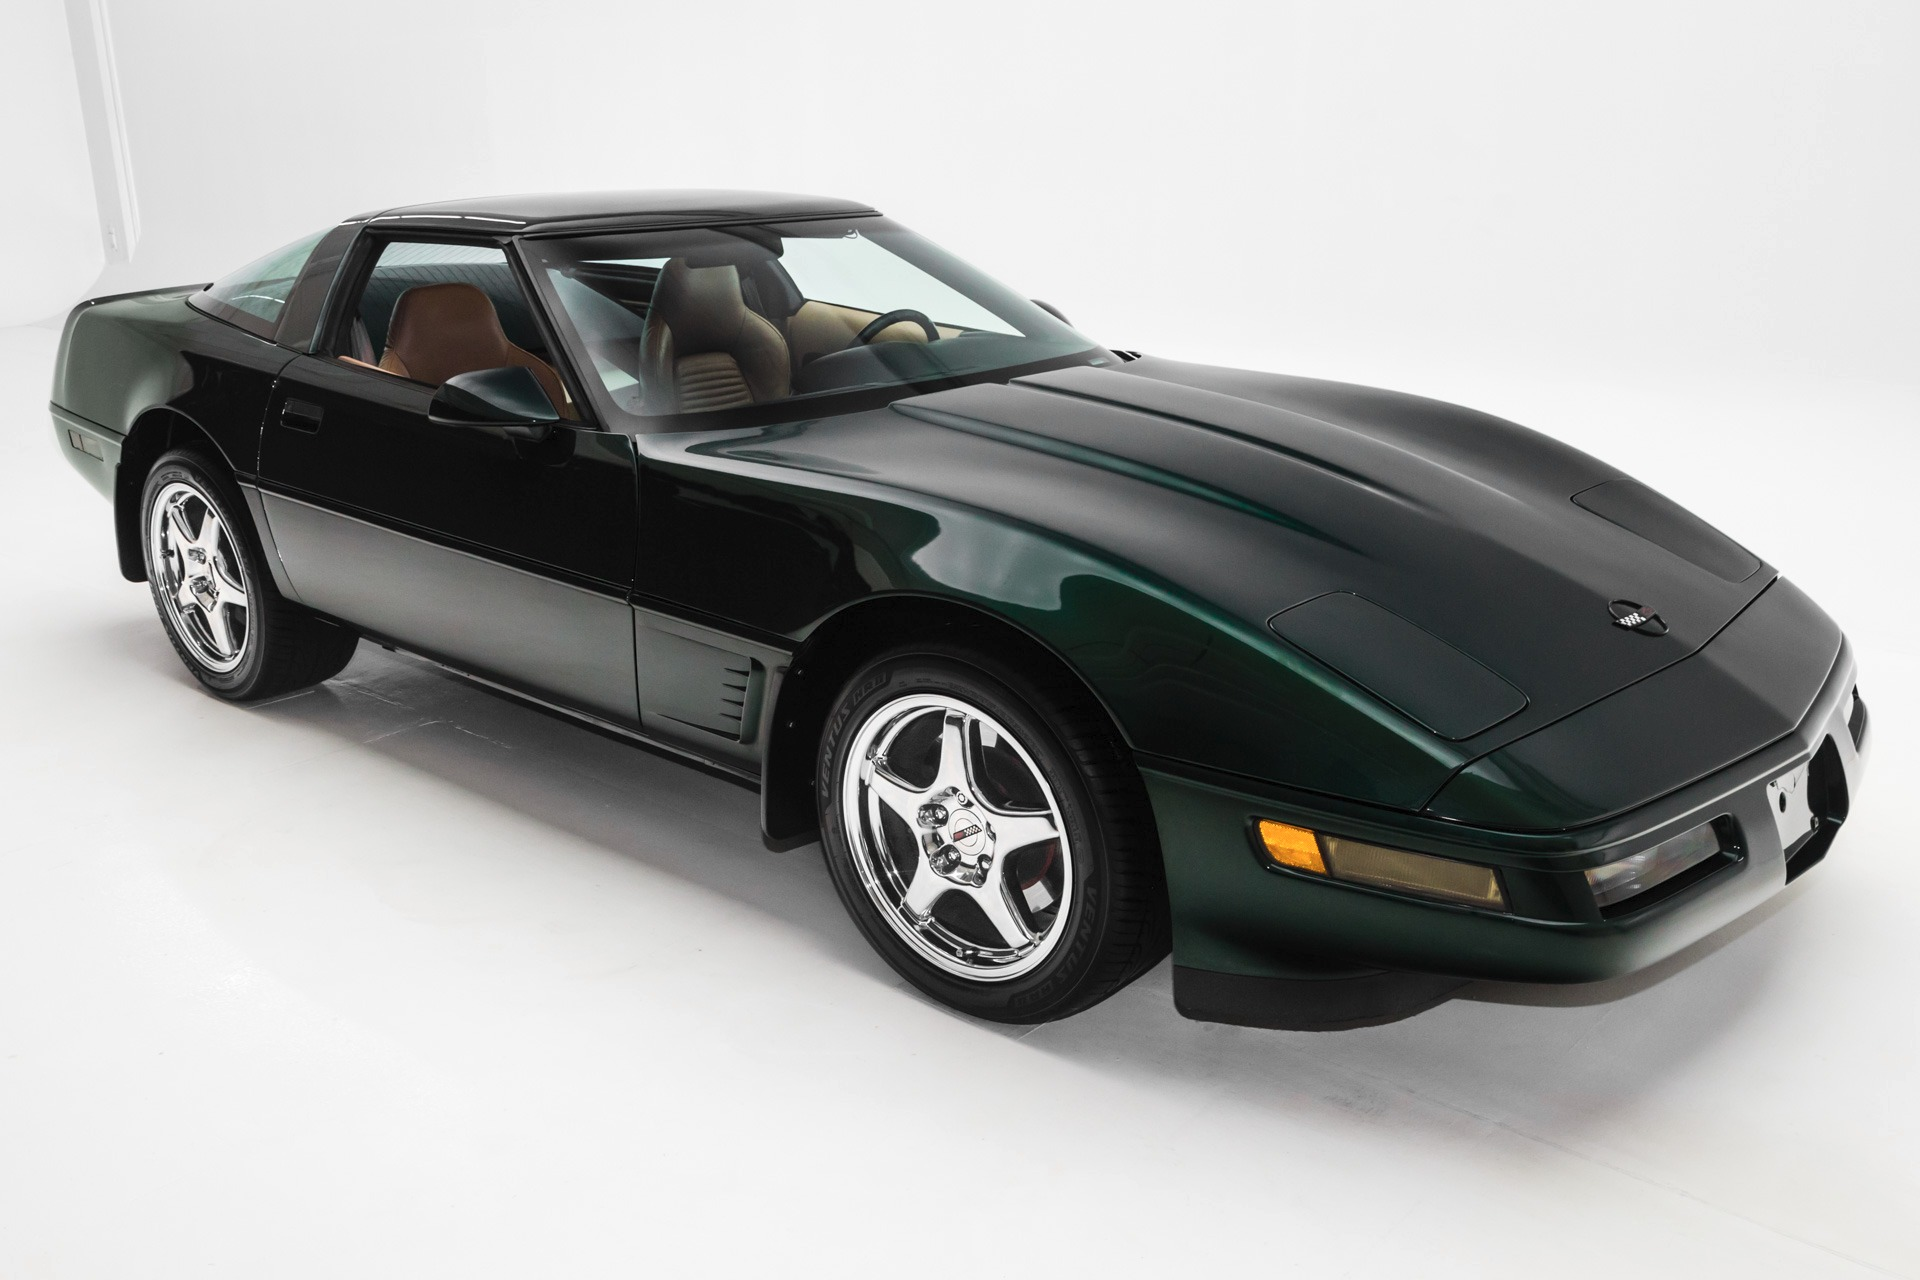 For Sale Used 1996 Chevrolet Corvette Removable top  LT1 | American Dream Machines Des Moines IA 50309